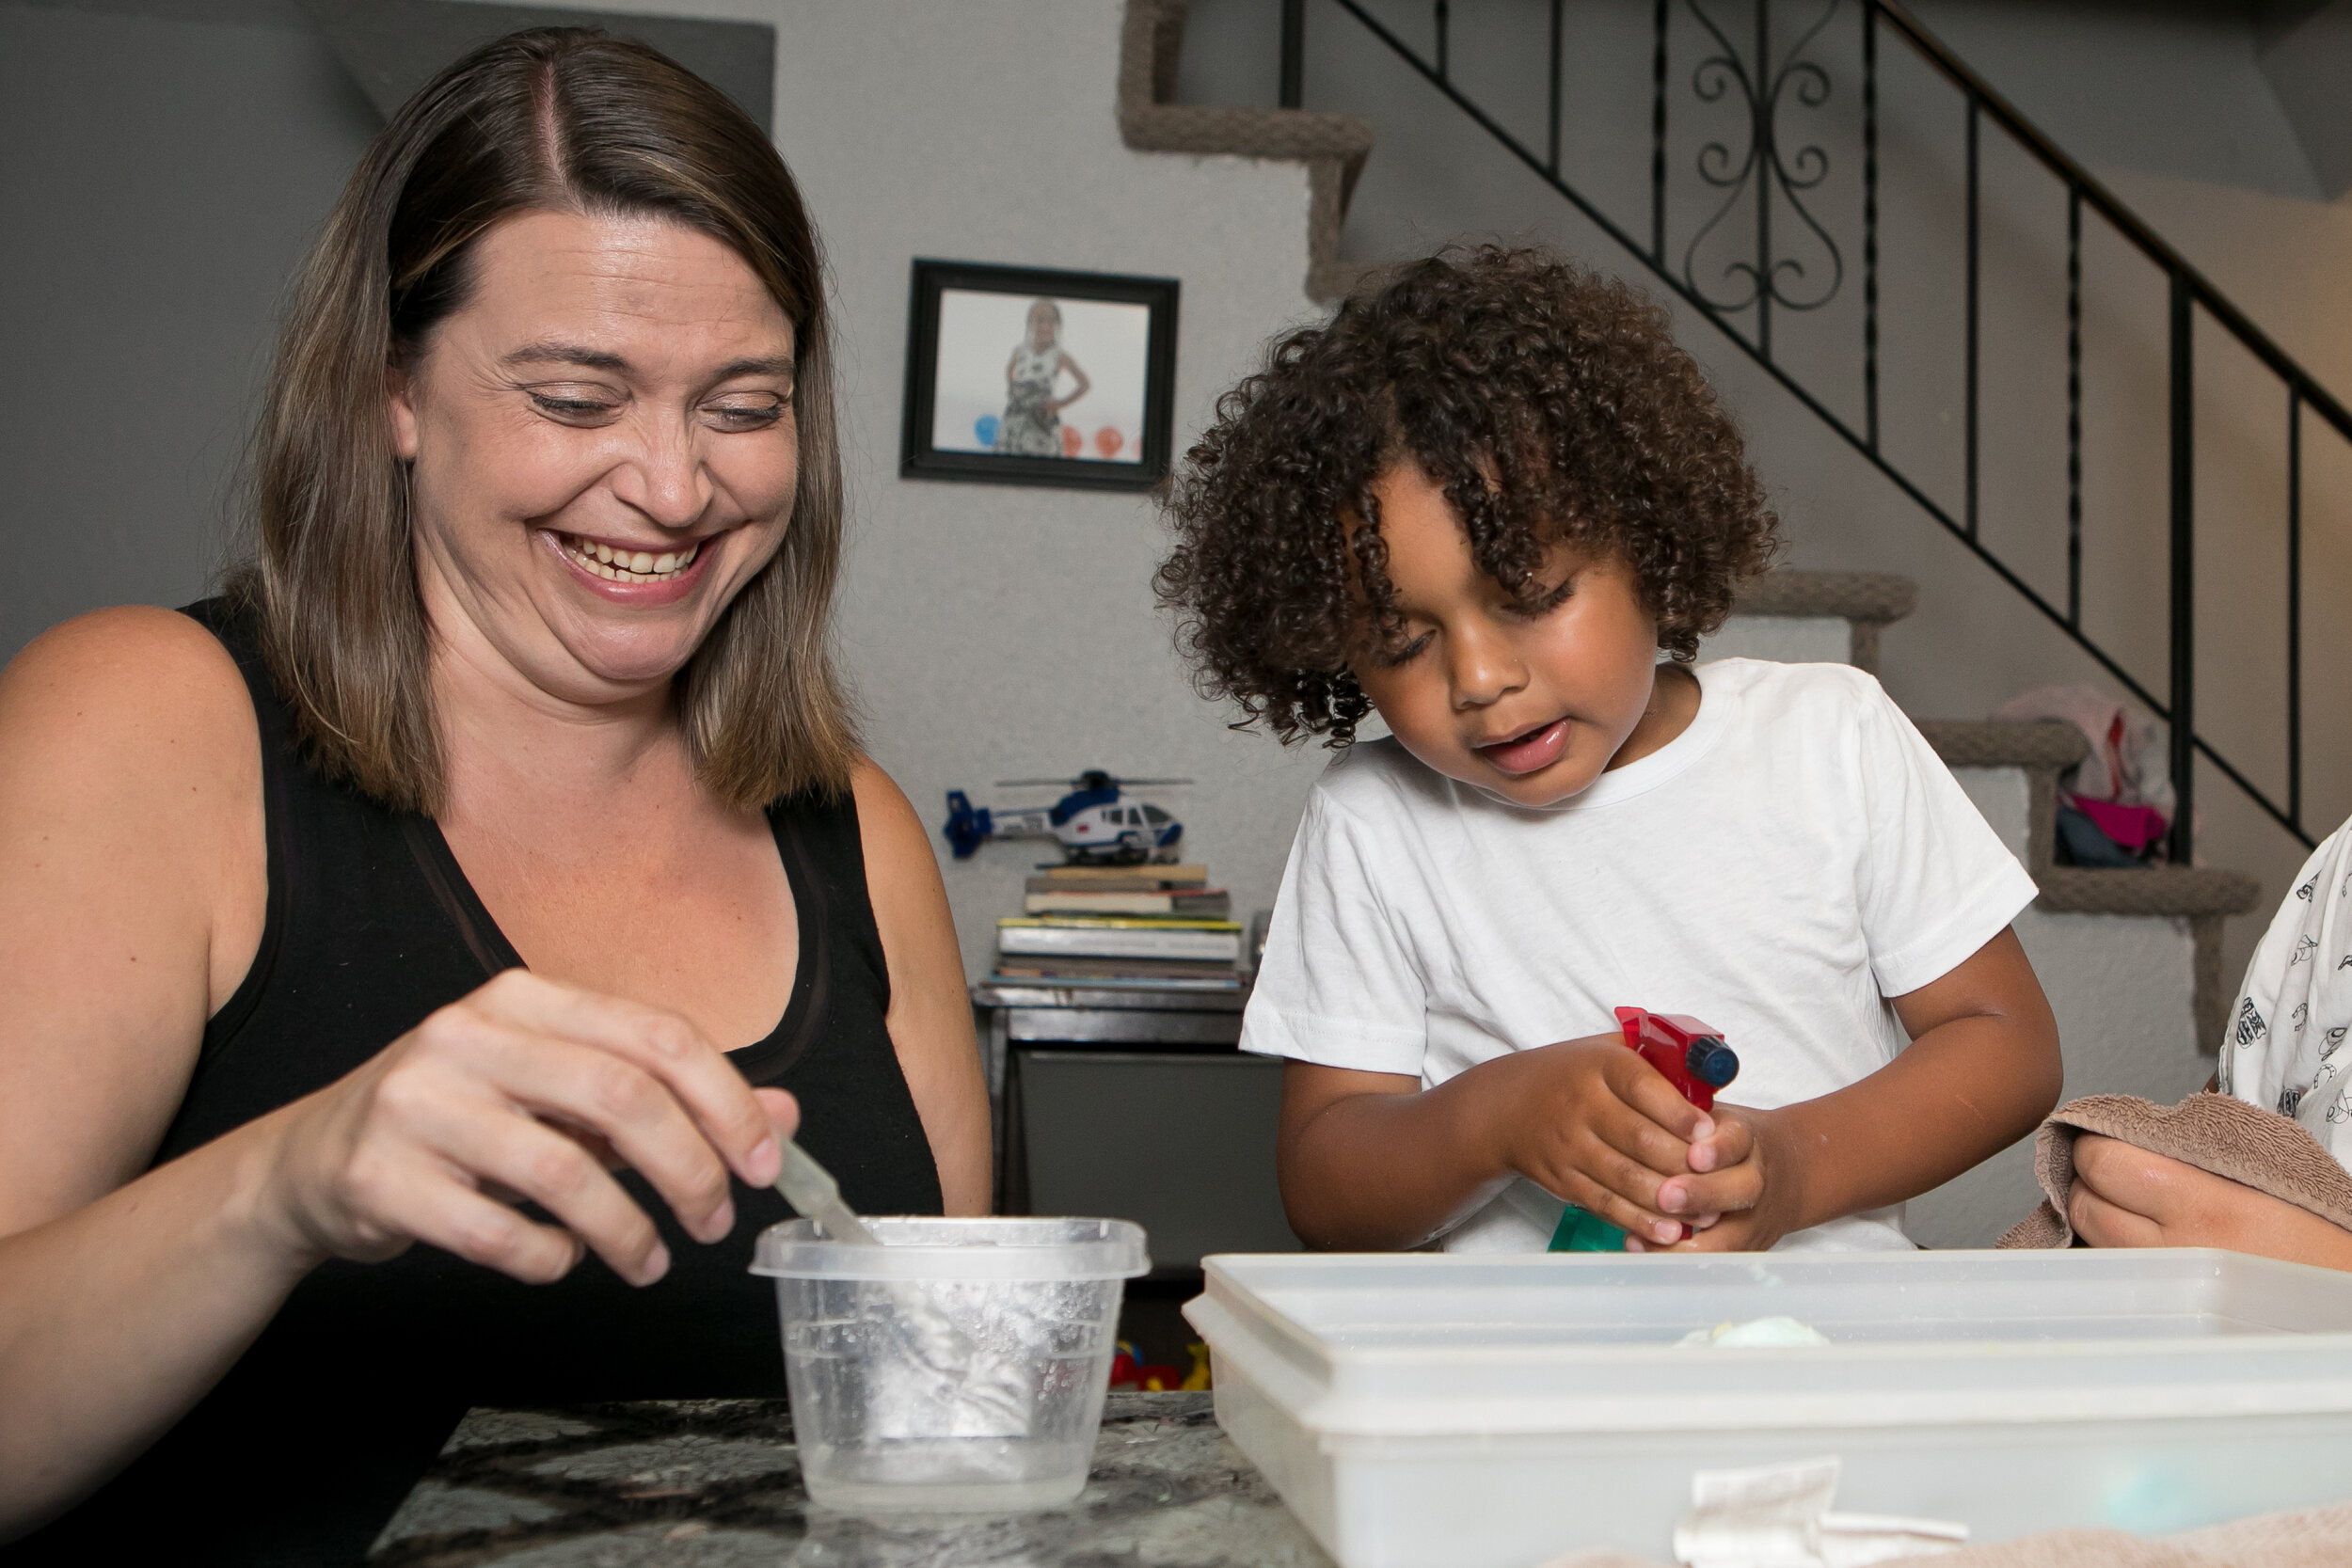 Andrea and Dezmond do an art activity during a home visit.